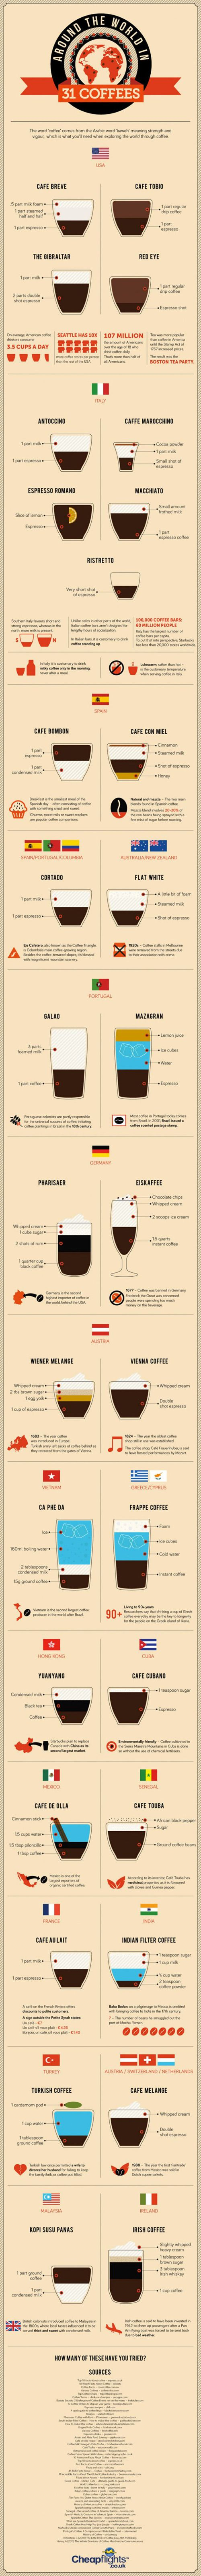 Infographic: Around the World in 31 Coffees - FirstWeFeast.com